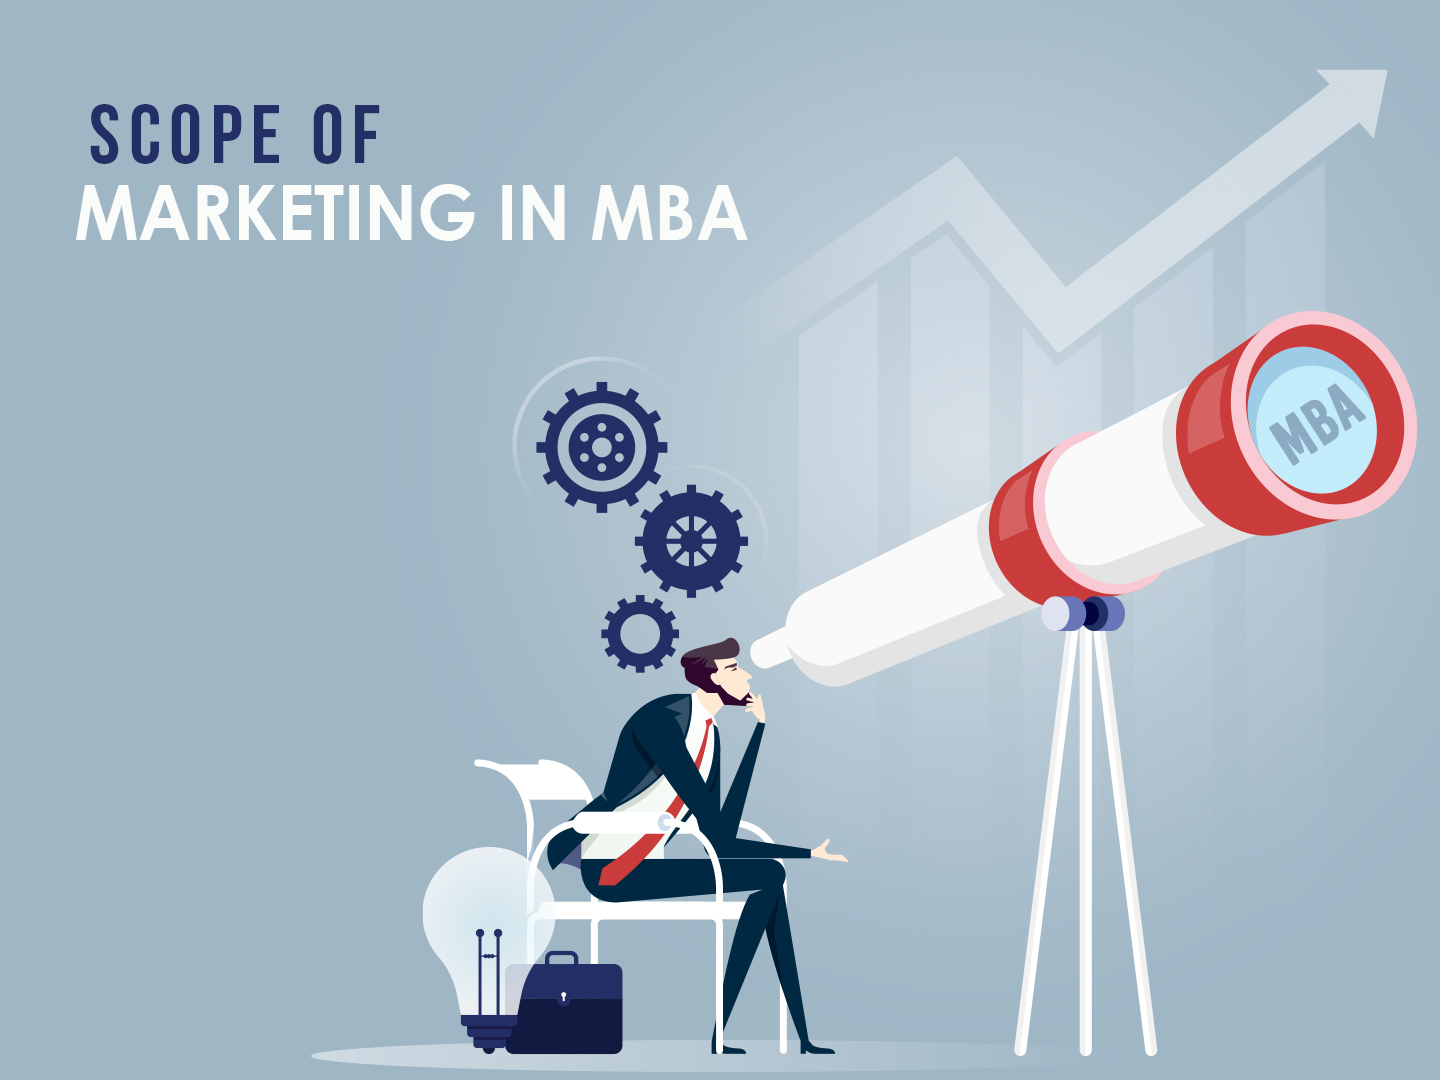 Know the scope of marketing in MBA